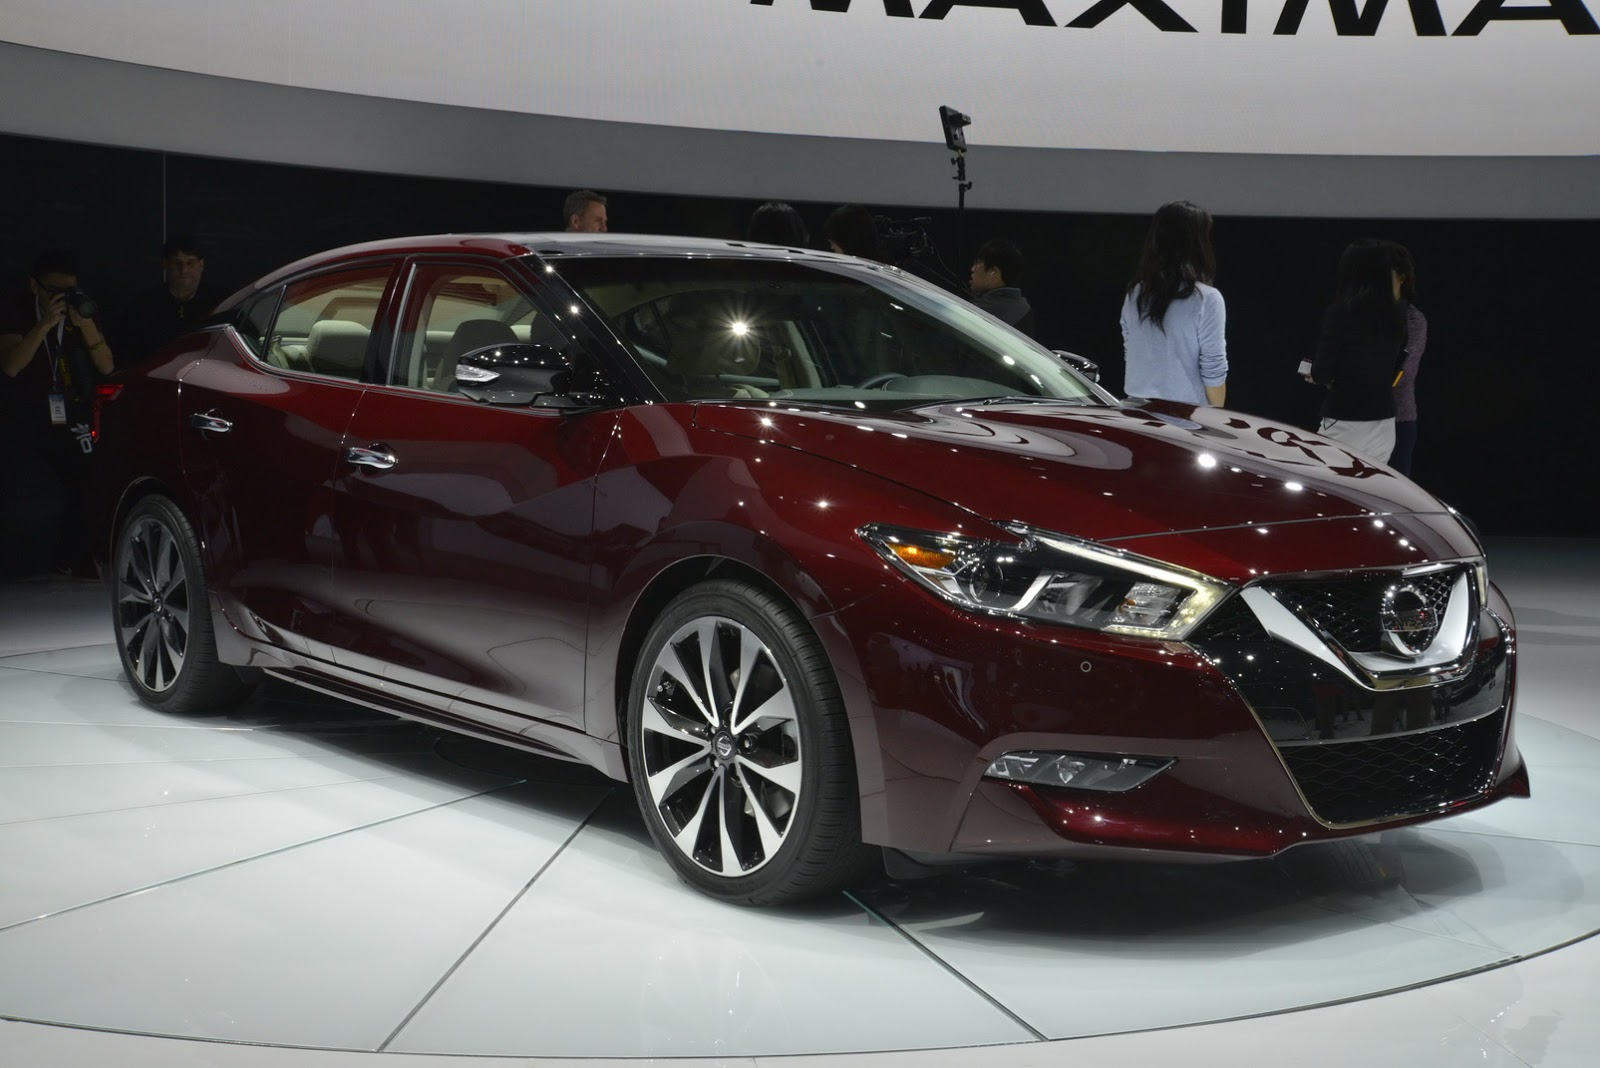 Nissan's Stunning All-New 2016 Maxima Revealed in New York [77 Pics]